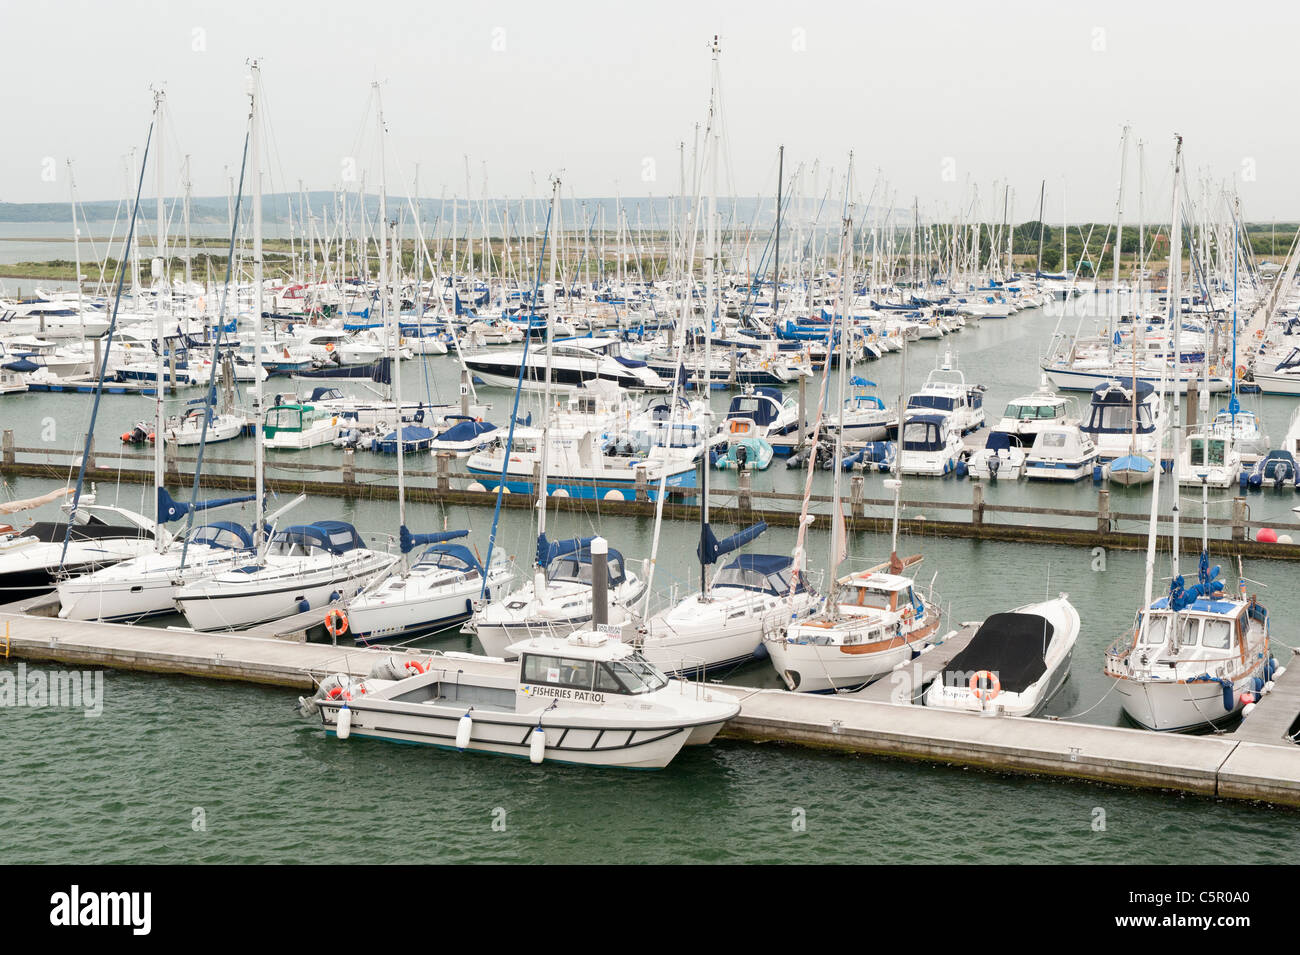 A number of expensive yachts line-up moored in a harbour near to Solent estuary in Lymington, Hampshire. - Stock Image